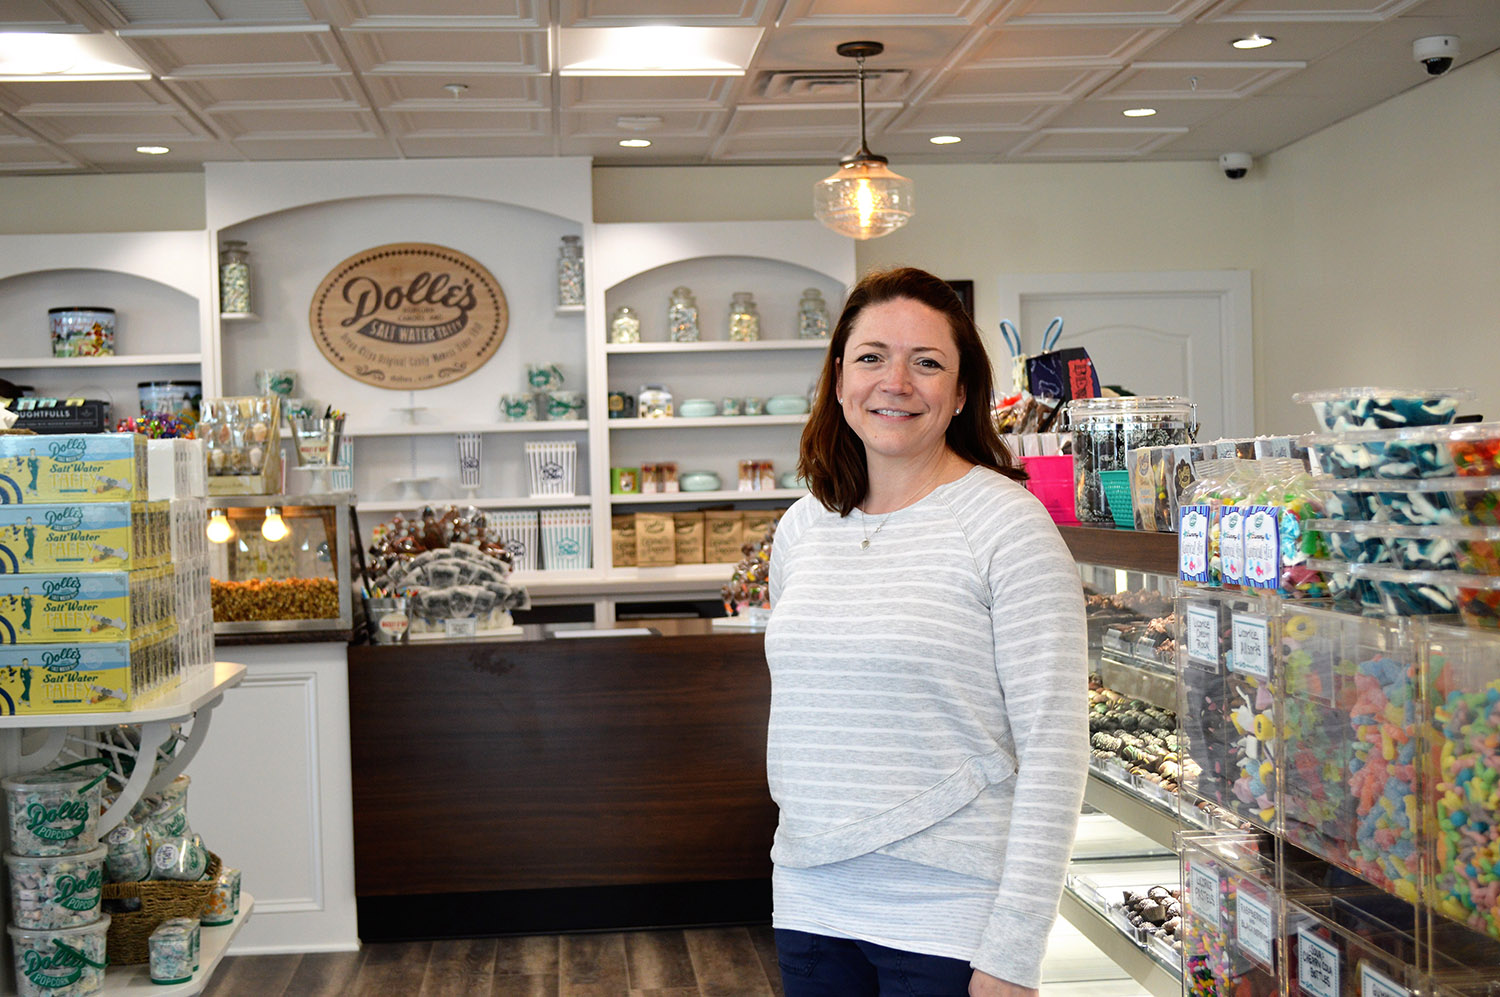 Dolle's Grows Family Candy Passion To West Ocean City